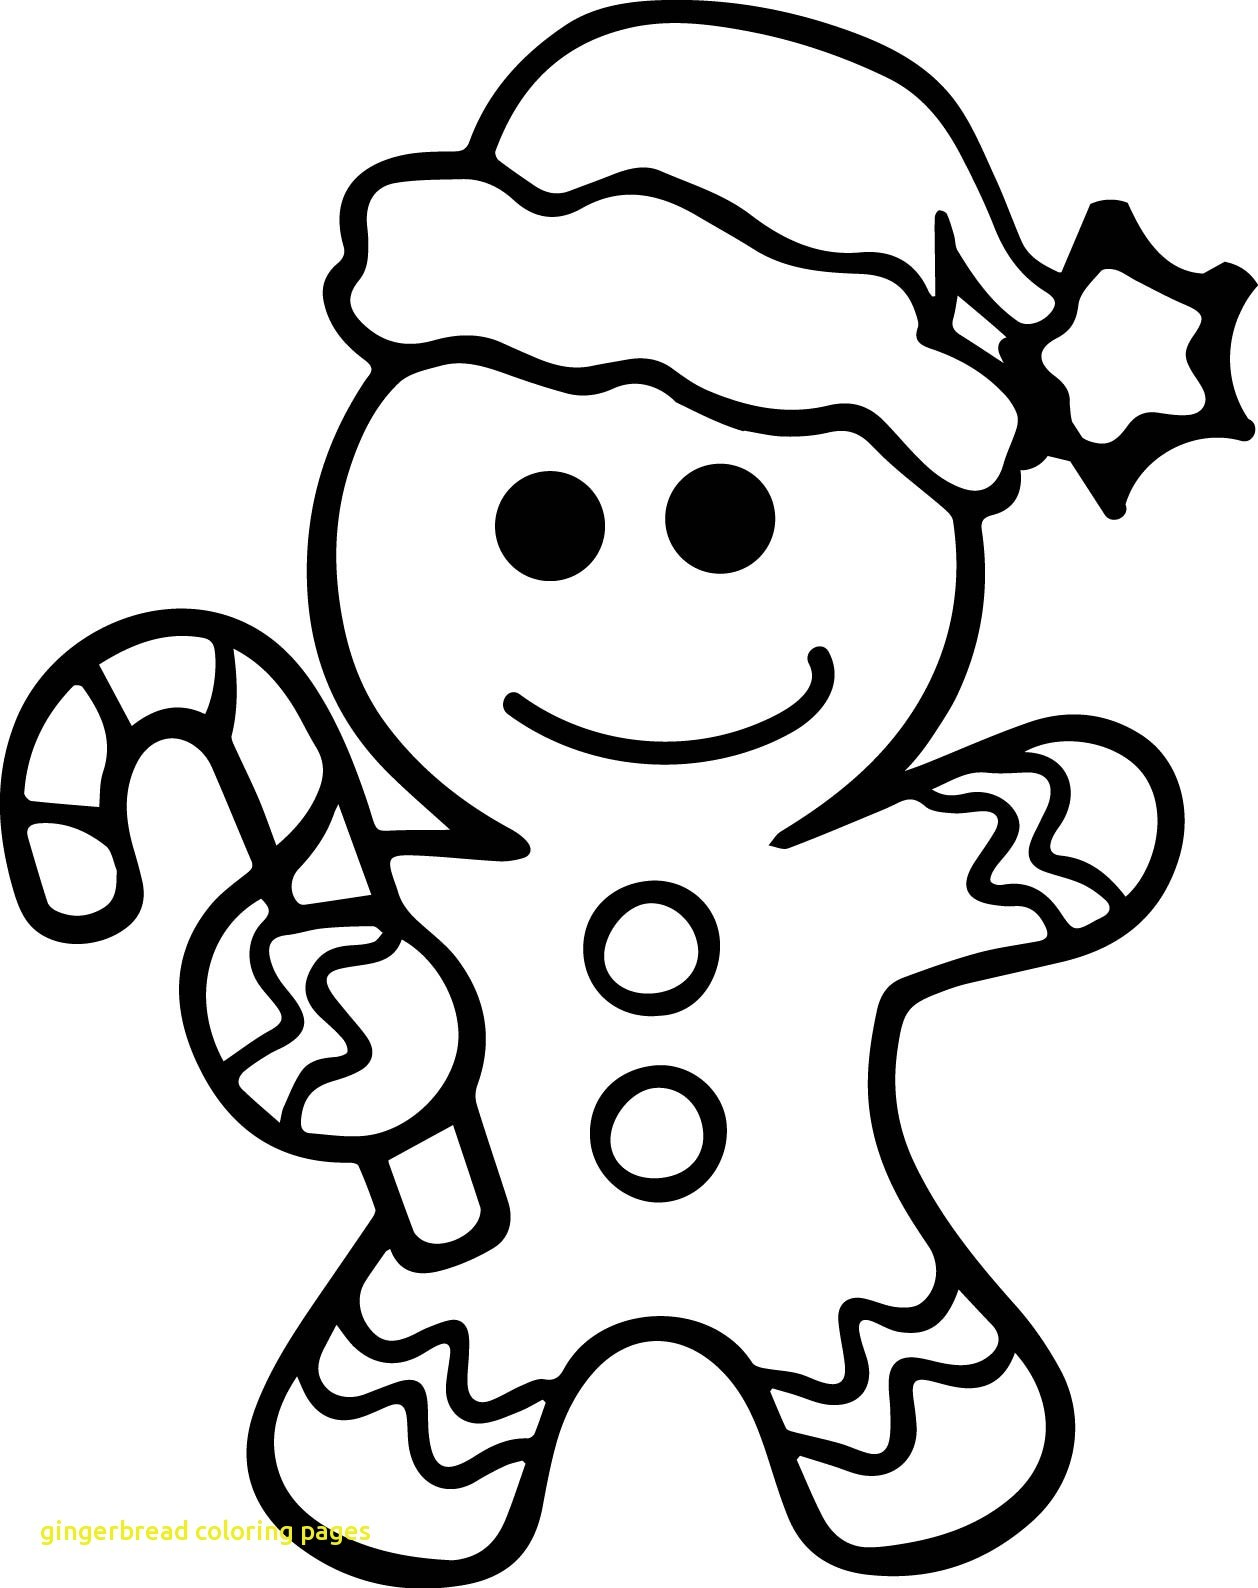 1258x1588 Gingerbread Coloring Page Discover All